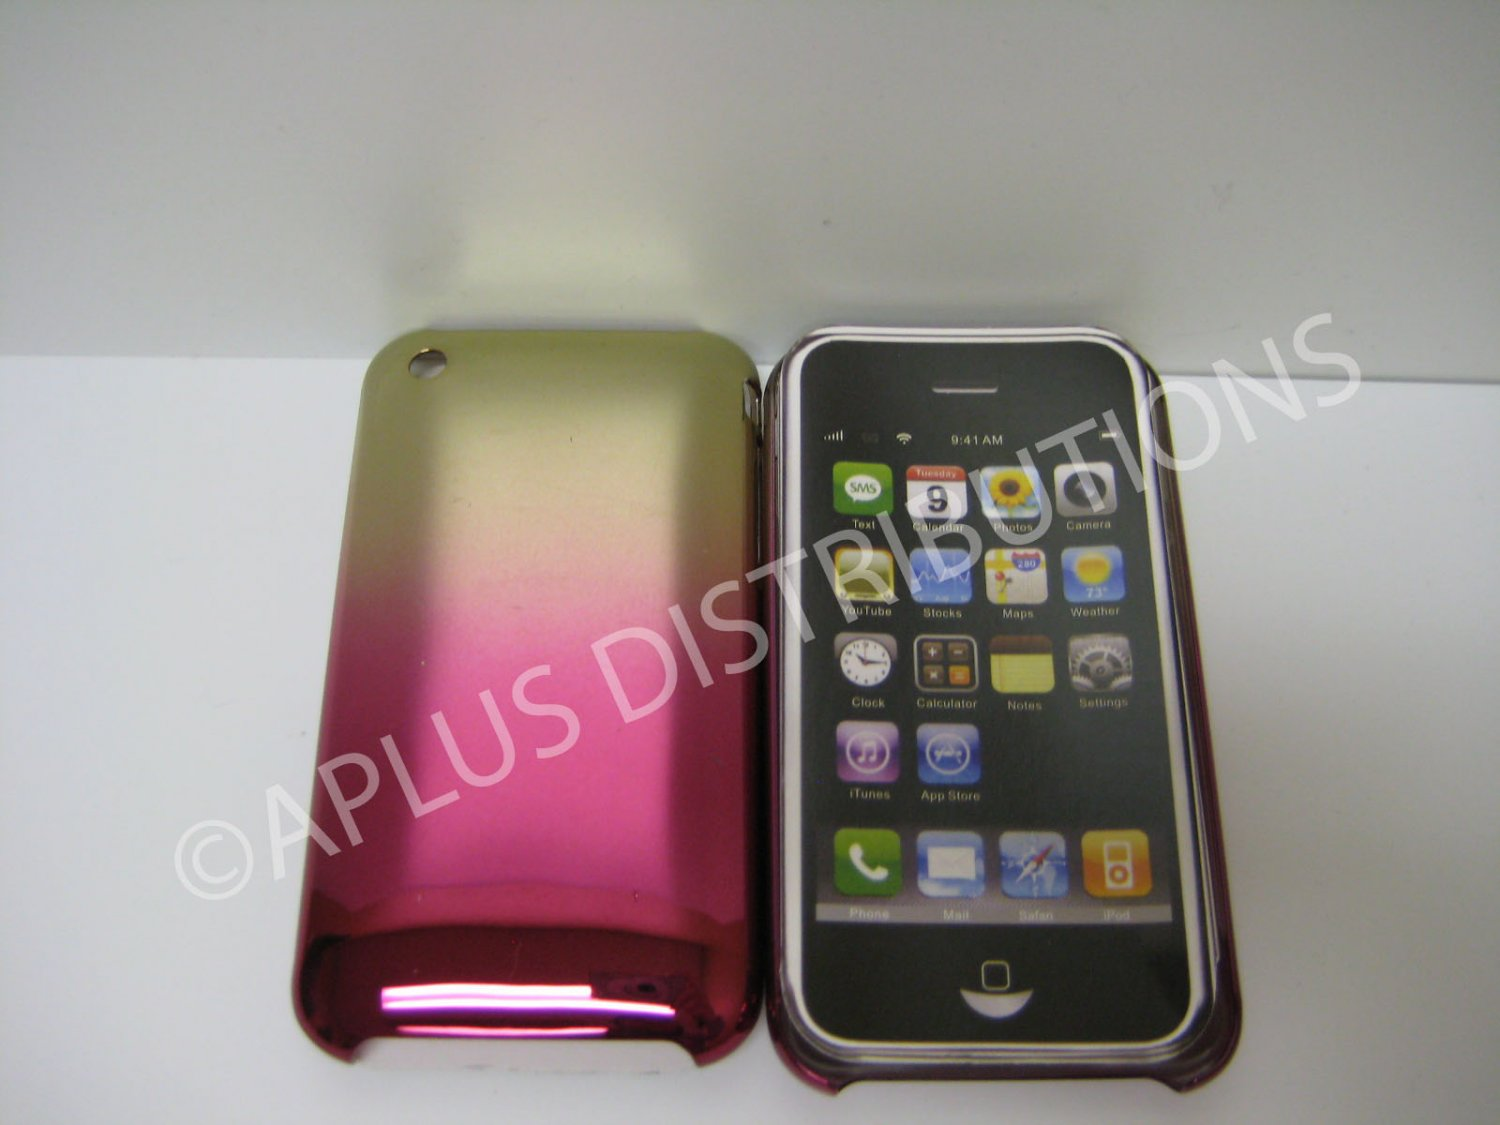 New Pink Metallic Reflection Design Hard Protective Cover For iPhone 3G 3GS - (0090)